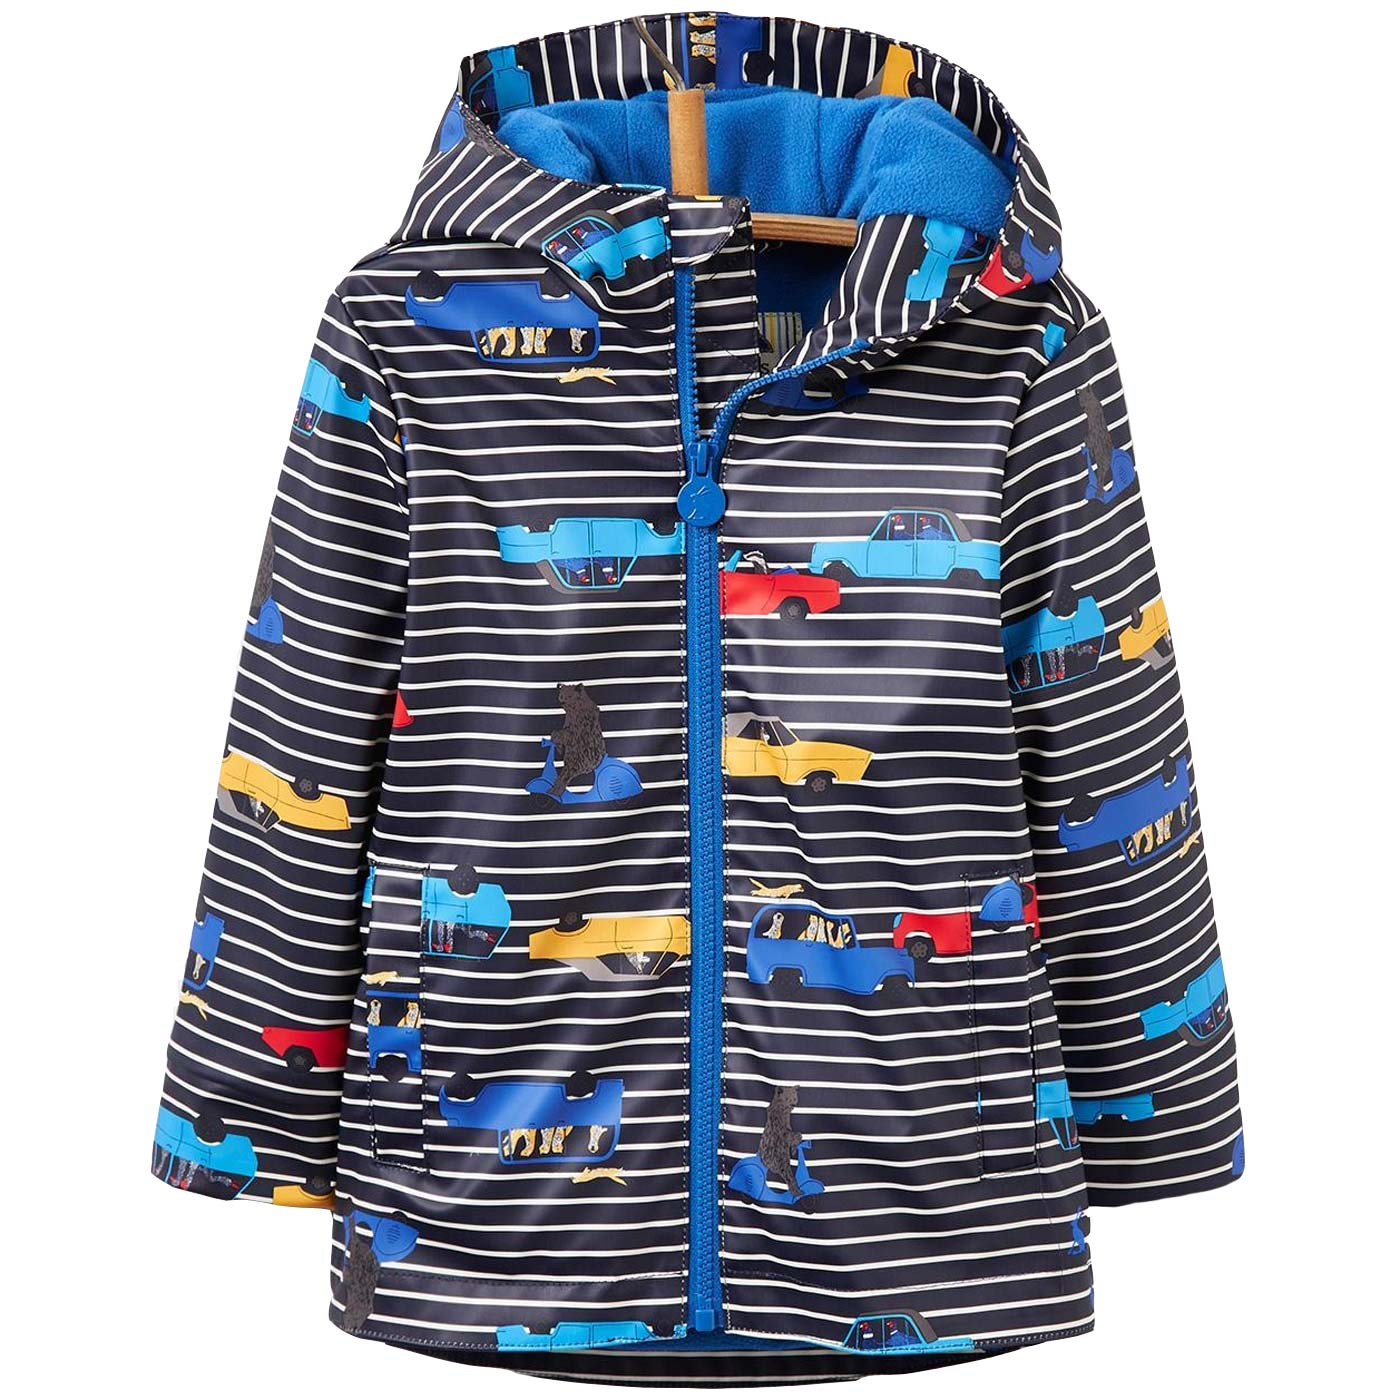 Tom Joule Skipper Waterproof navy stripe cars